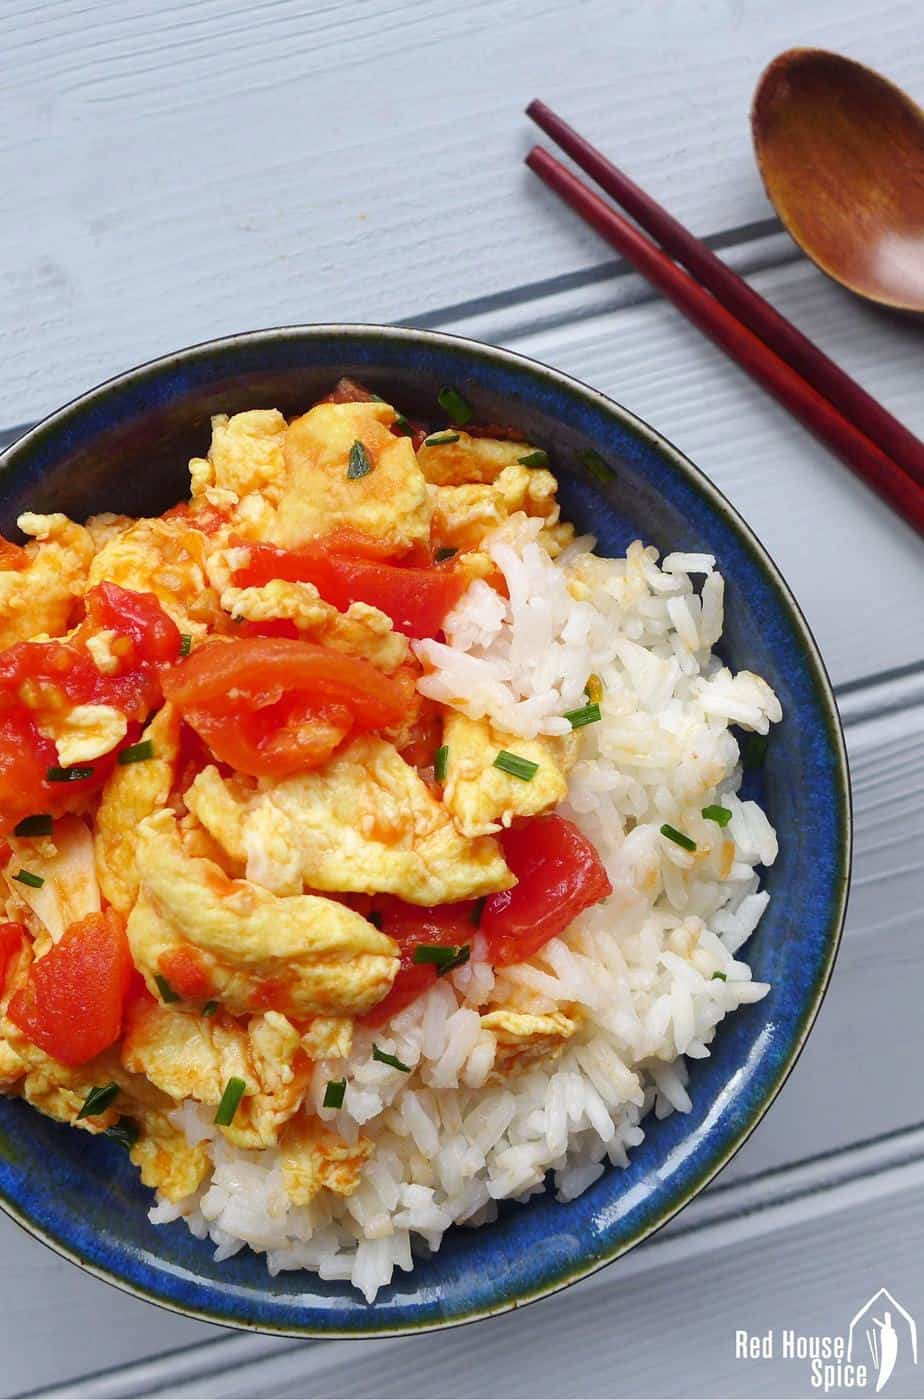 Tomato and egg stir-fry over a bowl of rice